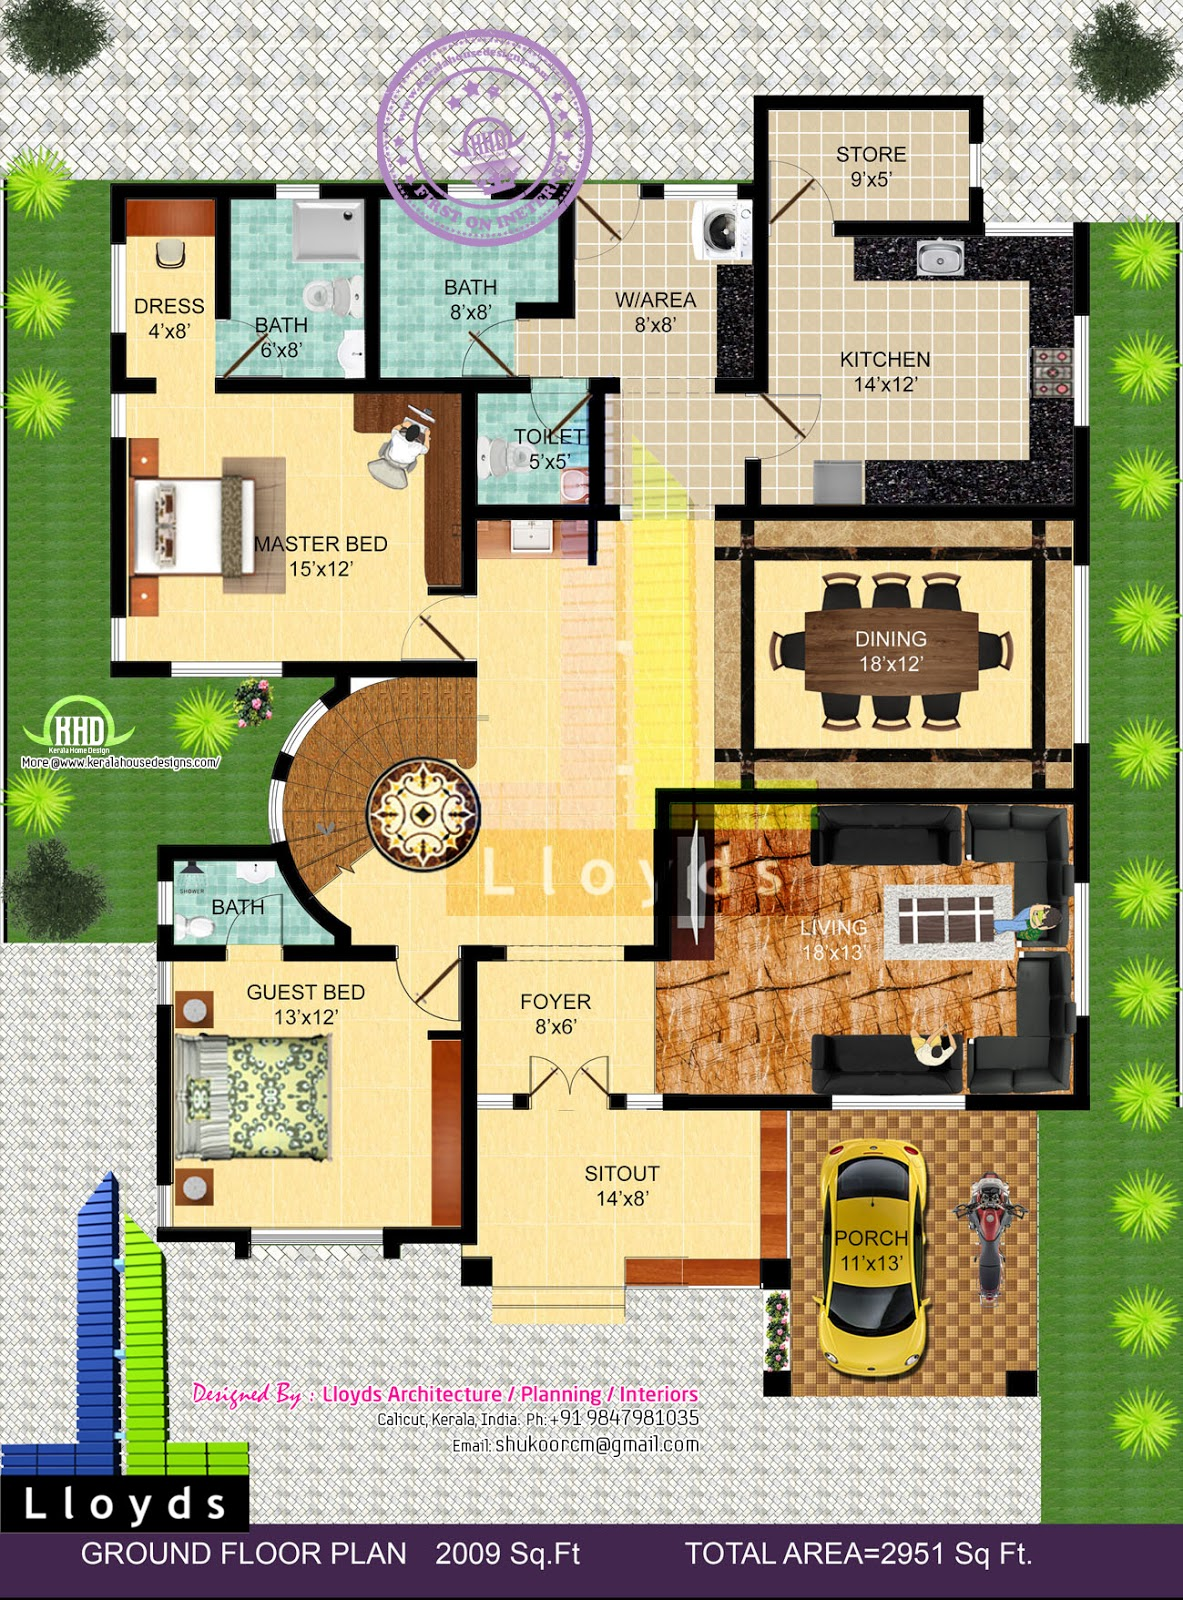 Home Design Plans Ground Floor - Home Review and Car Insurance